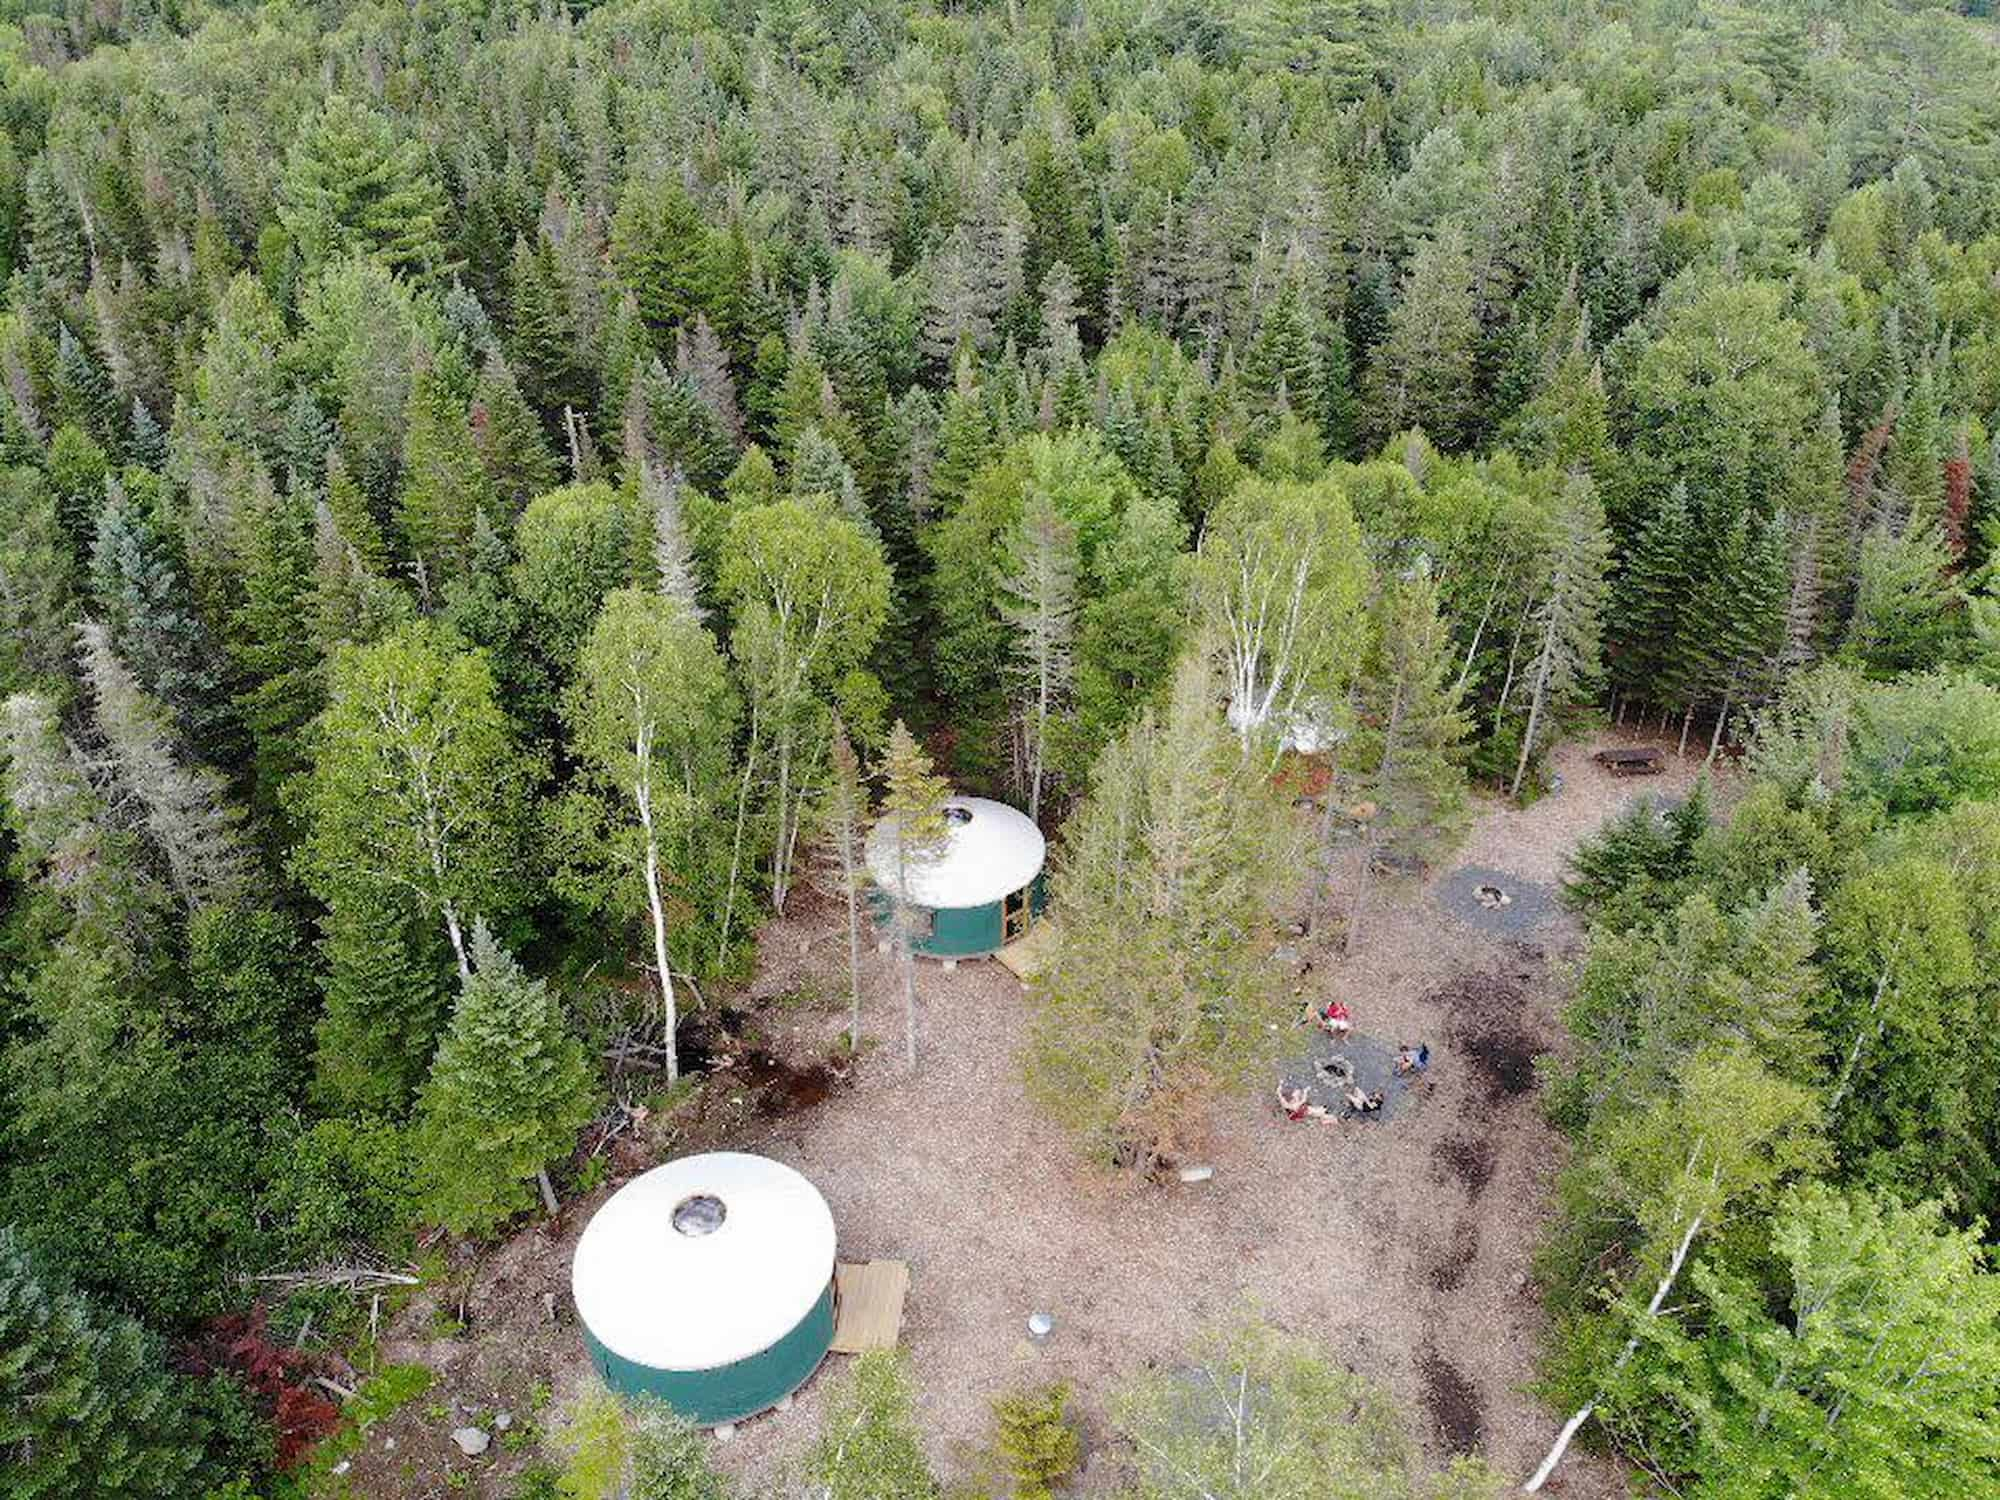 yurts and forest from above